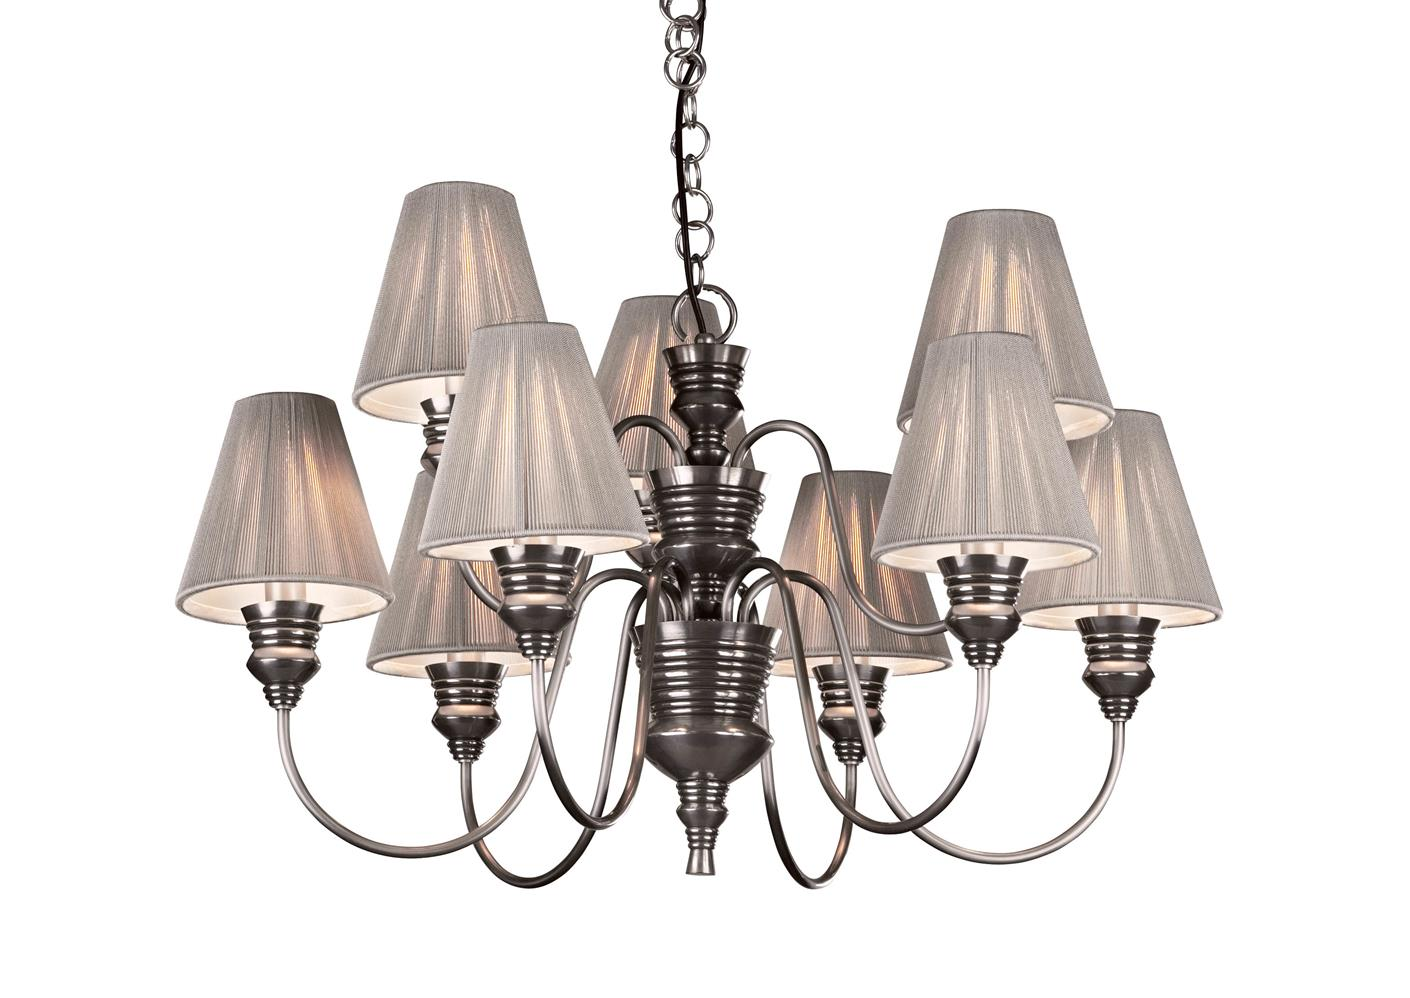 David Hunt Lighting DOR1367 Doreen 9 Light Pendant in Pewter with Silver Shades